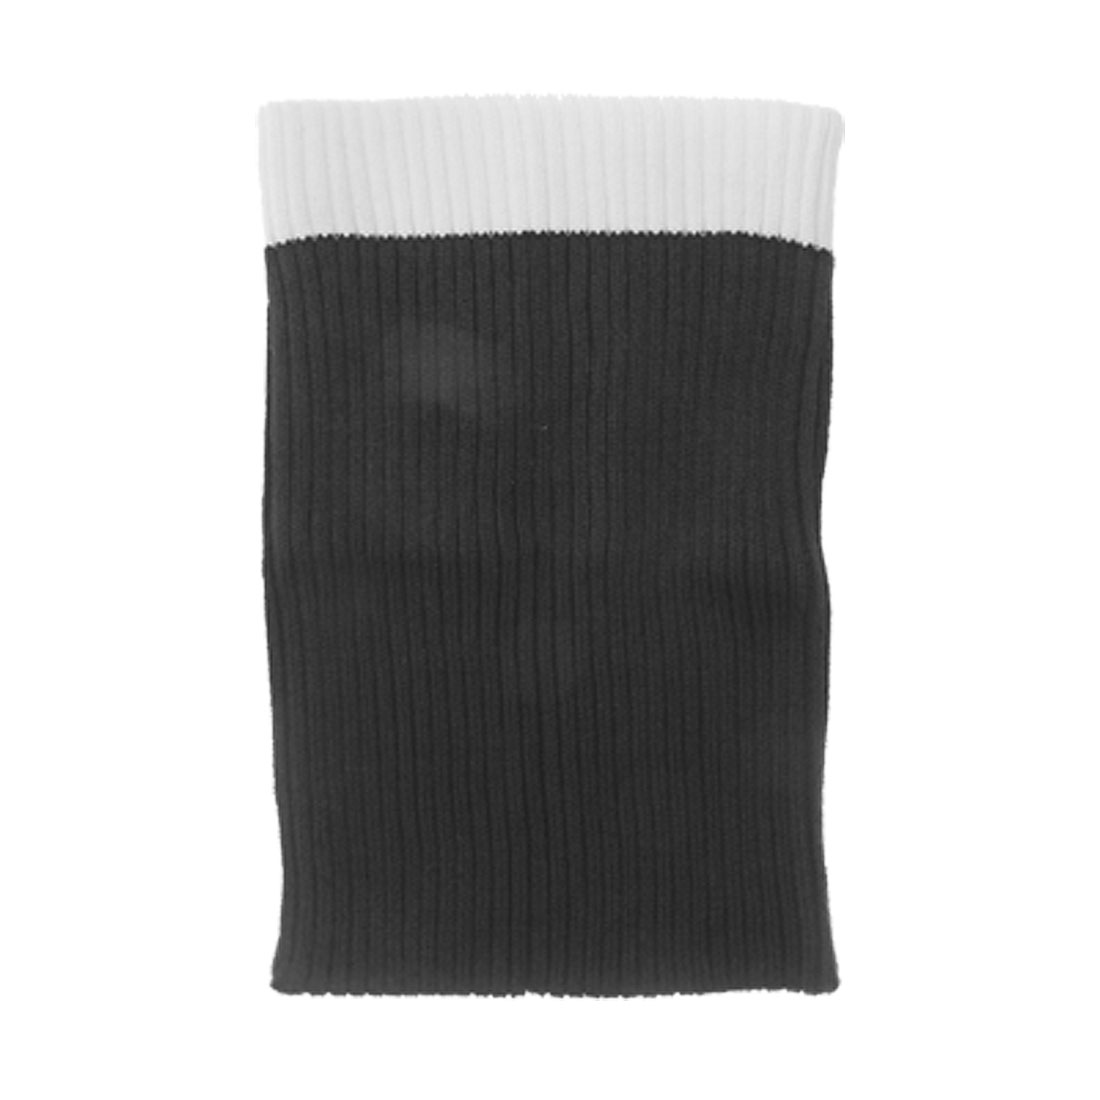 Black White Soft Knit Sock Sleeve Cloth Pouch for Notebook Laptop